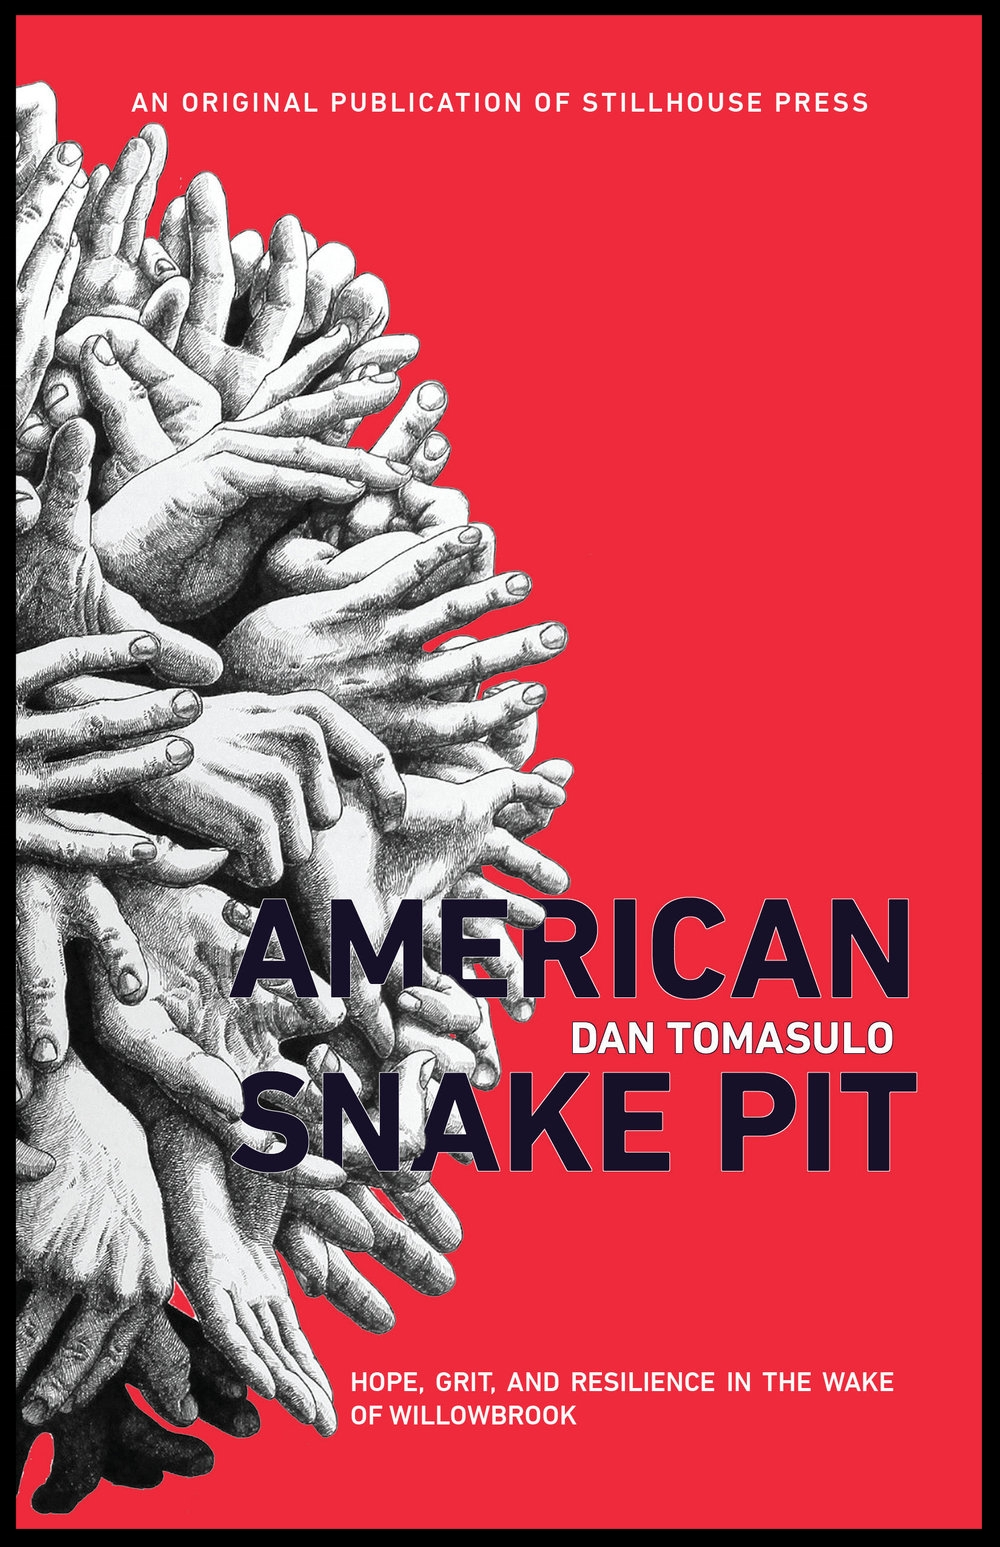 """American Snake Pit"" will be released May 1 by Stillhouse Press."